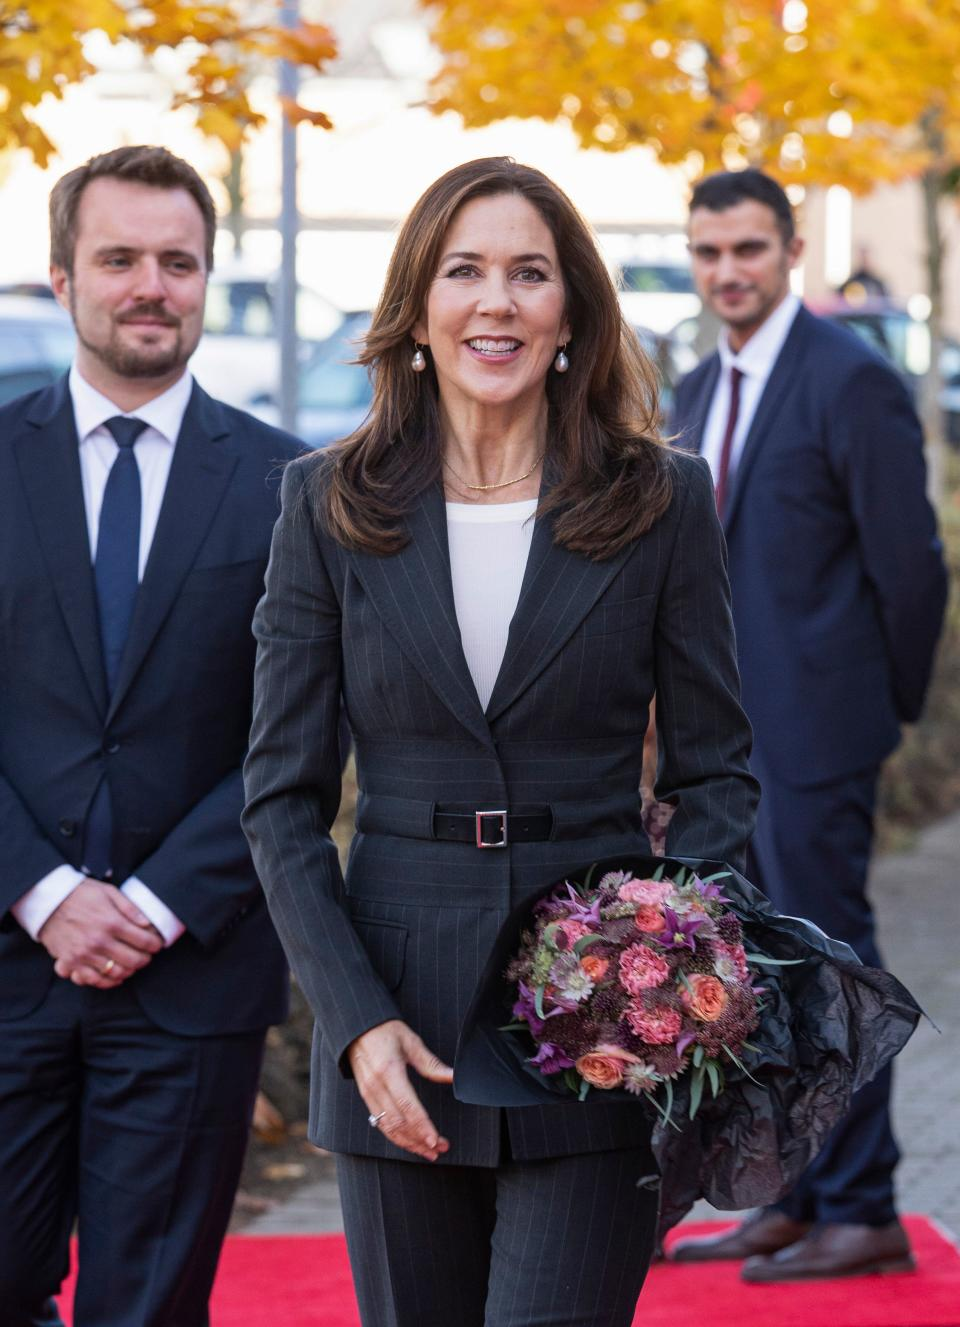 """Crown Princess Mary of Denmark arrives for the inauguration of the new national visitor center """"Nation of Health"""", in Odense on October 28, 2020"""